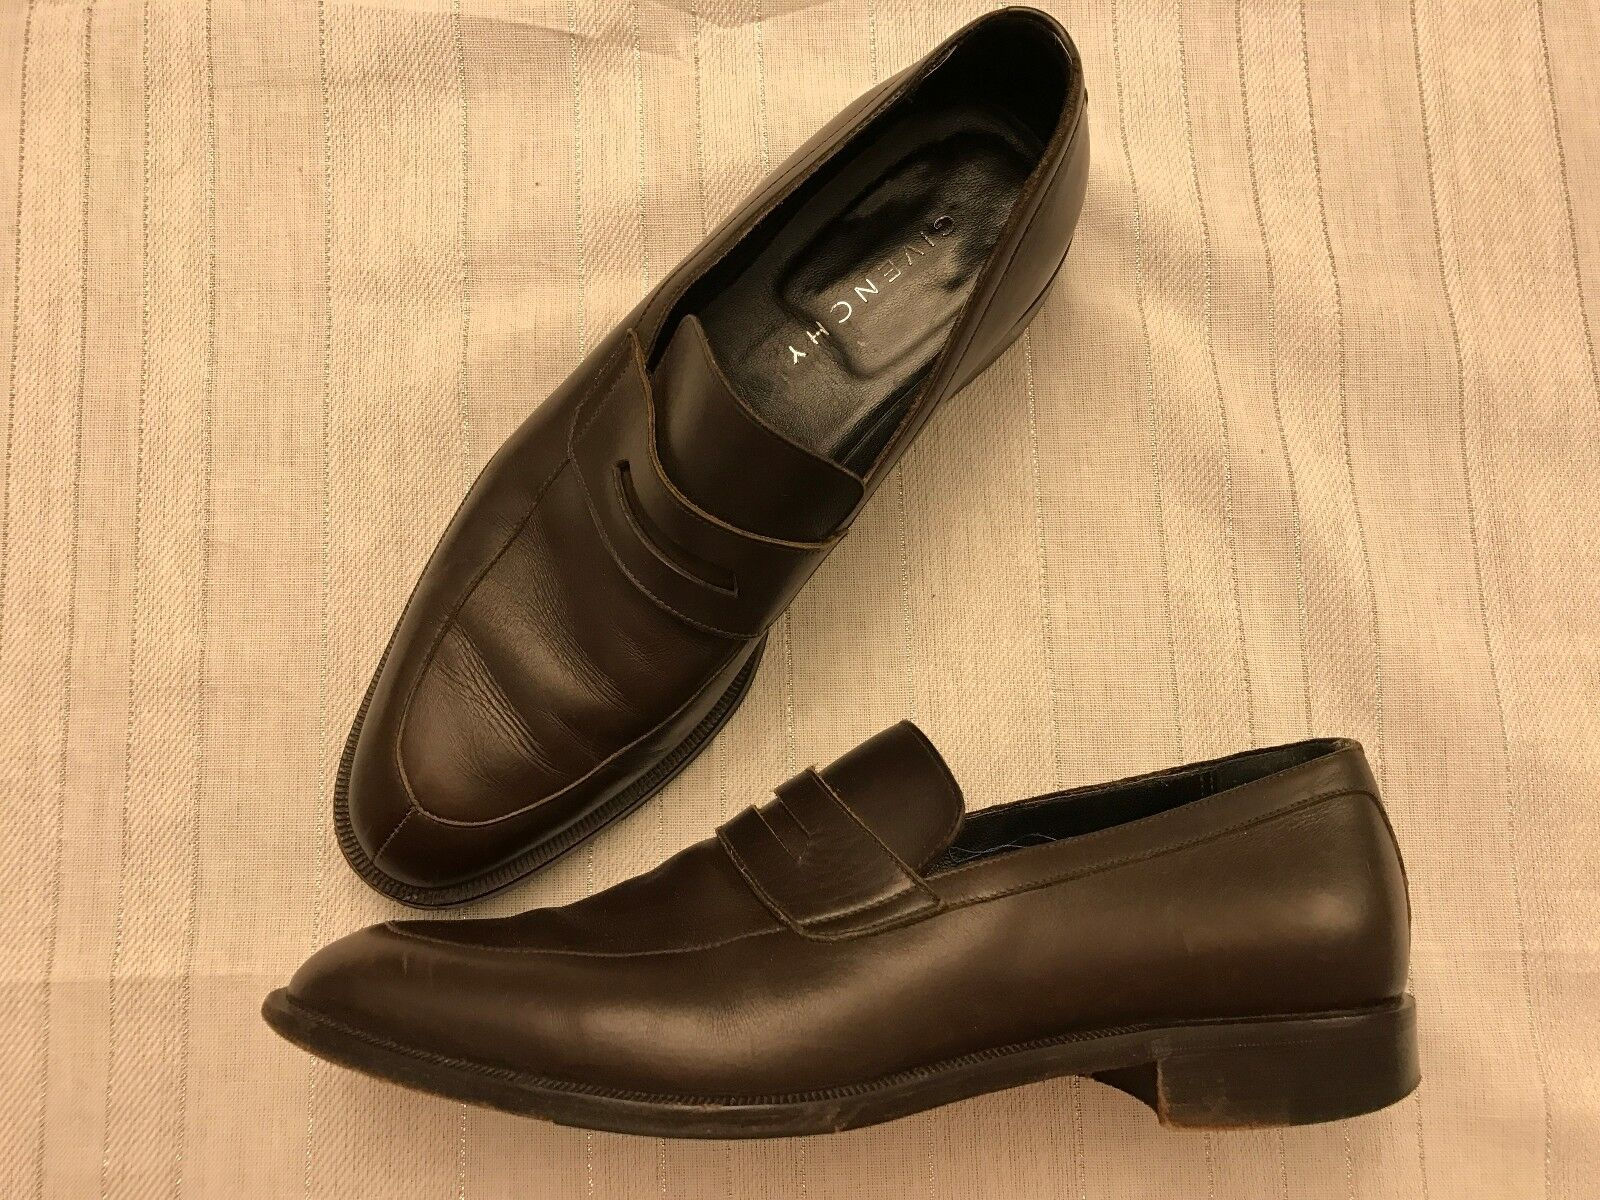 Givenchy (Authentic) Dress shoes Men's size 43 EURO, Size 10 US Brown - USED